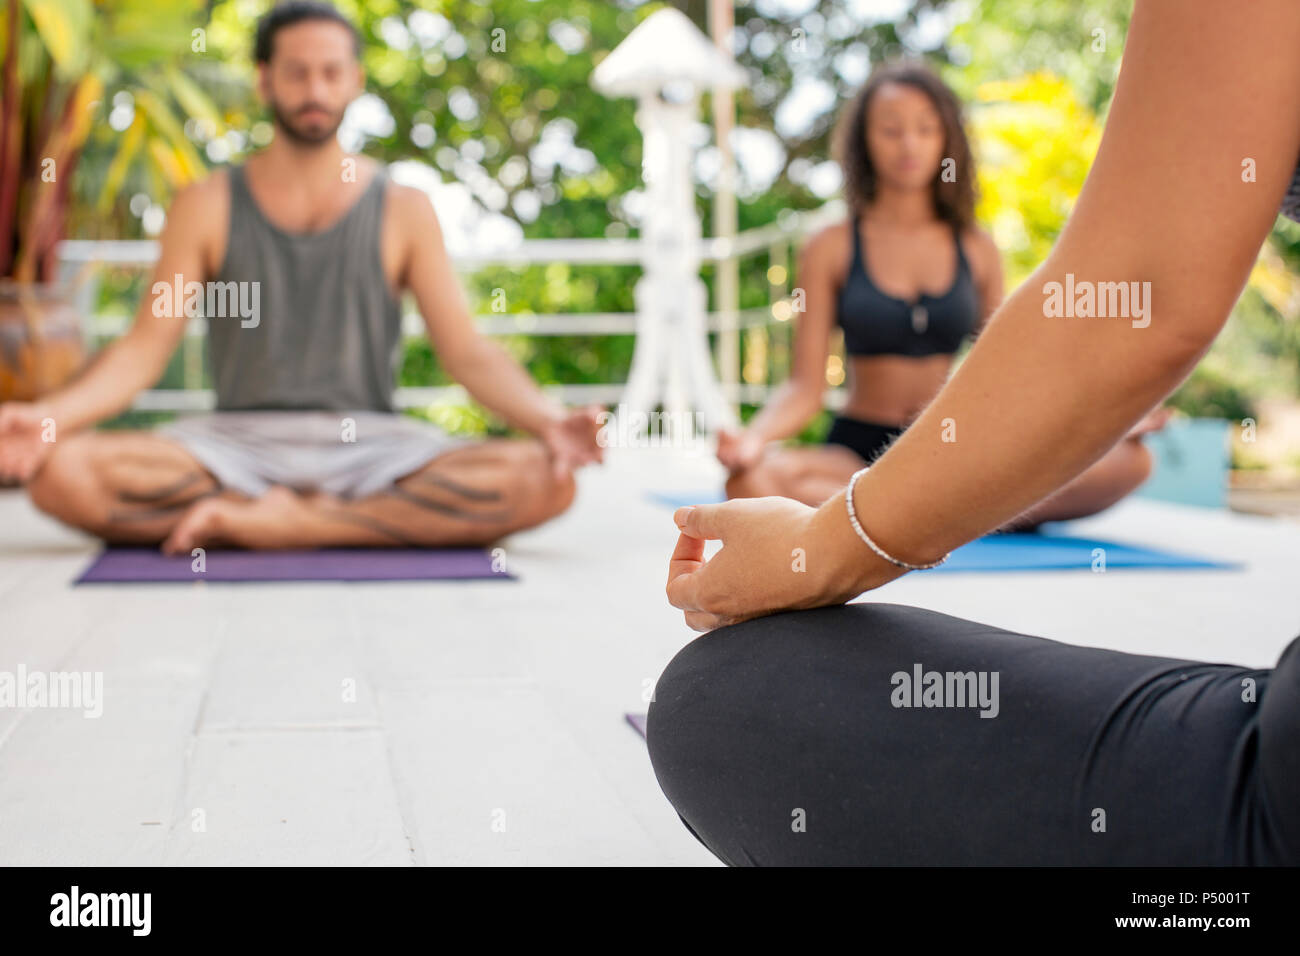 Two women and a man practicing yoga on terrace - Stock Image